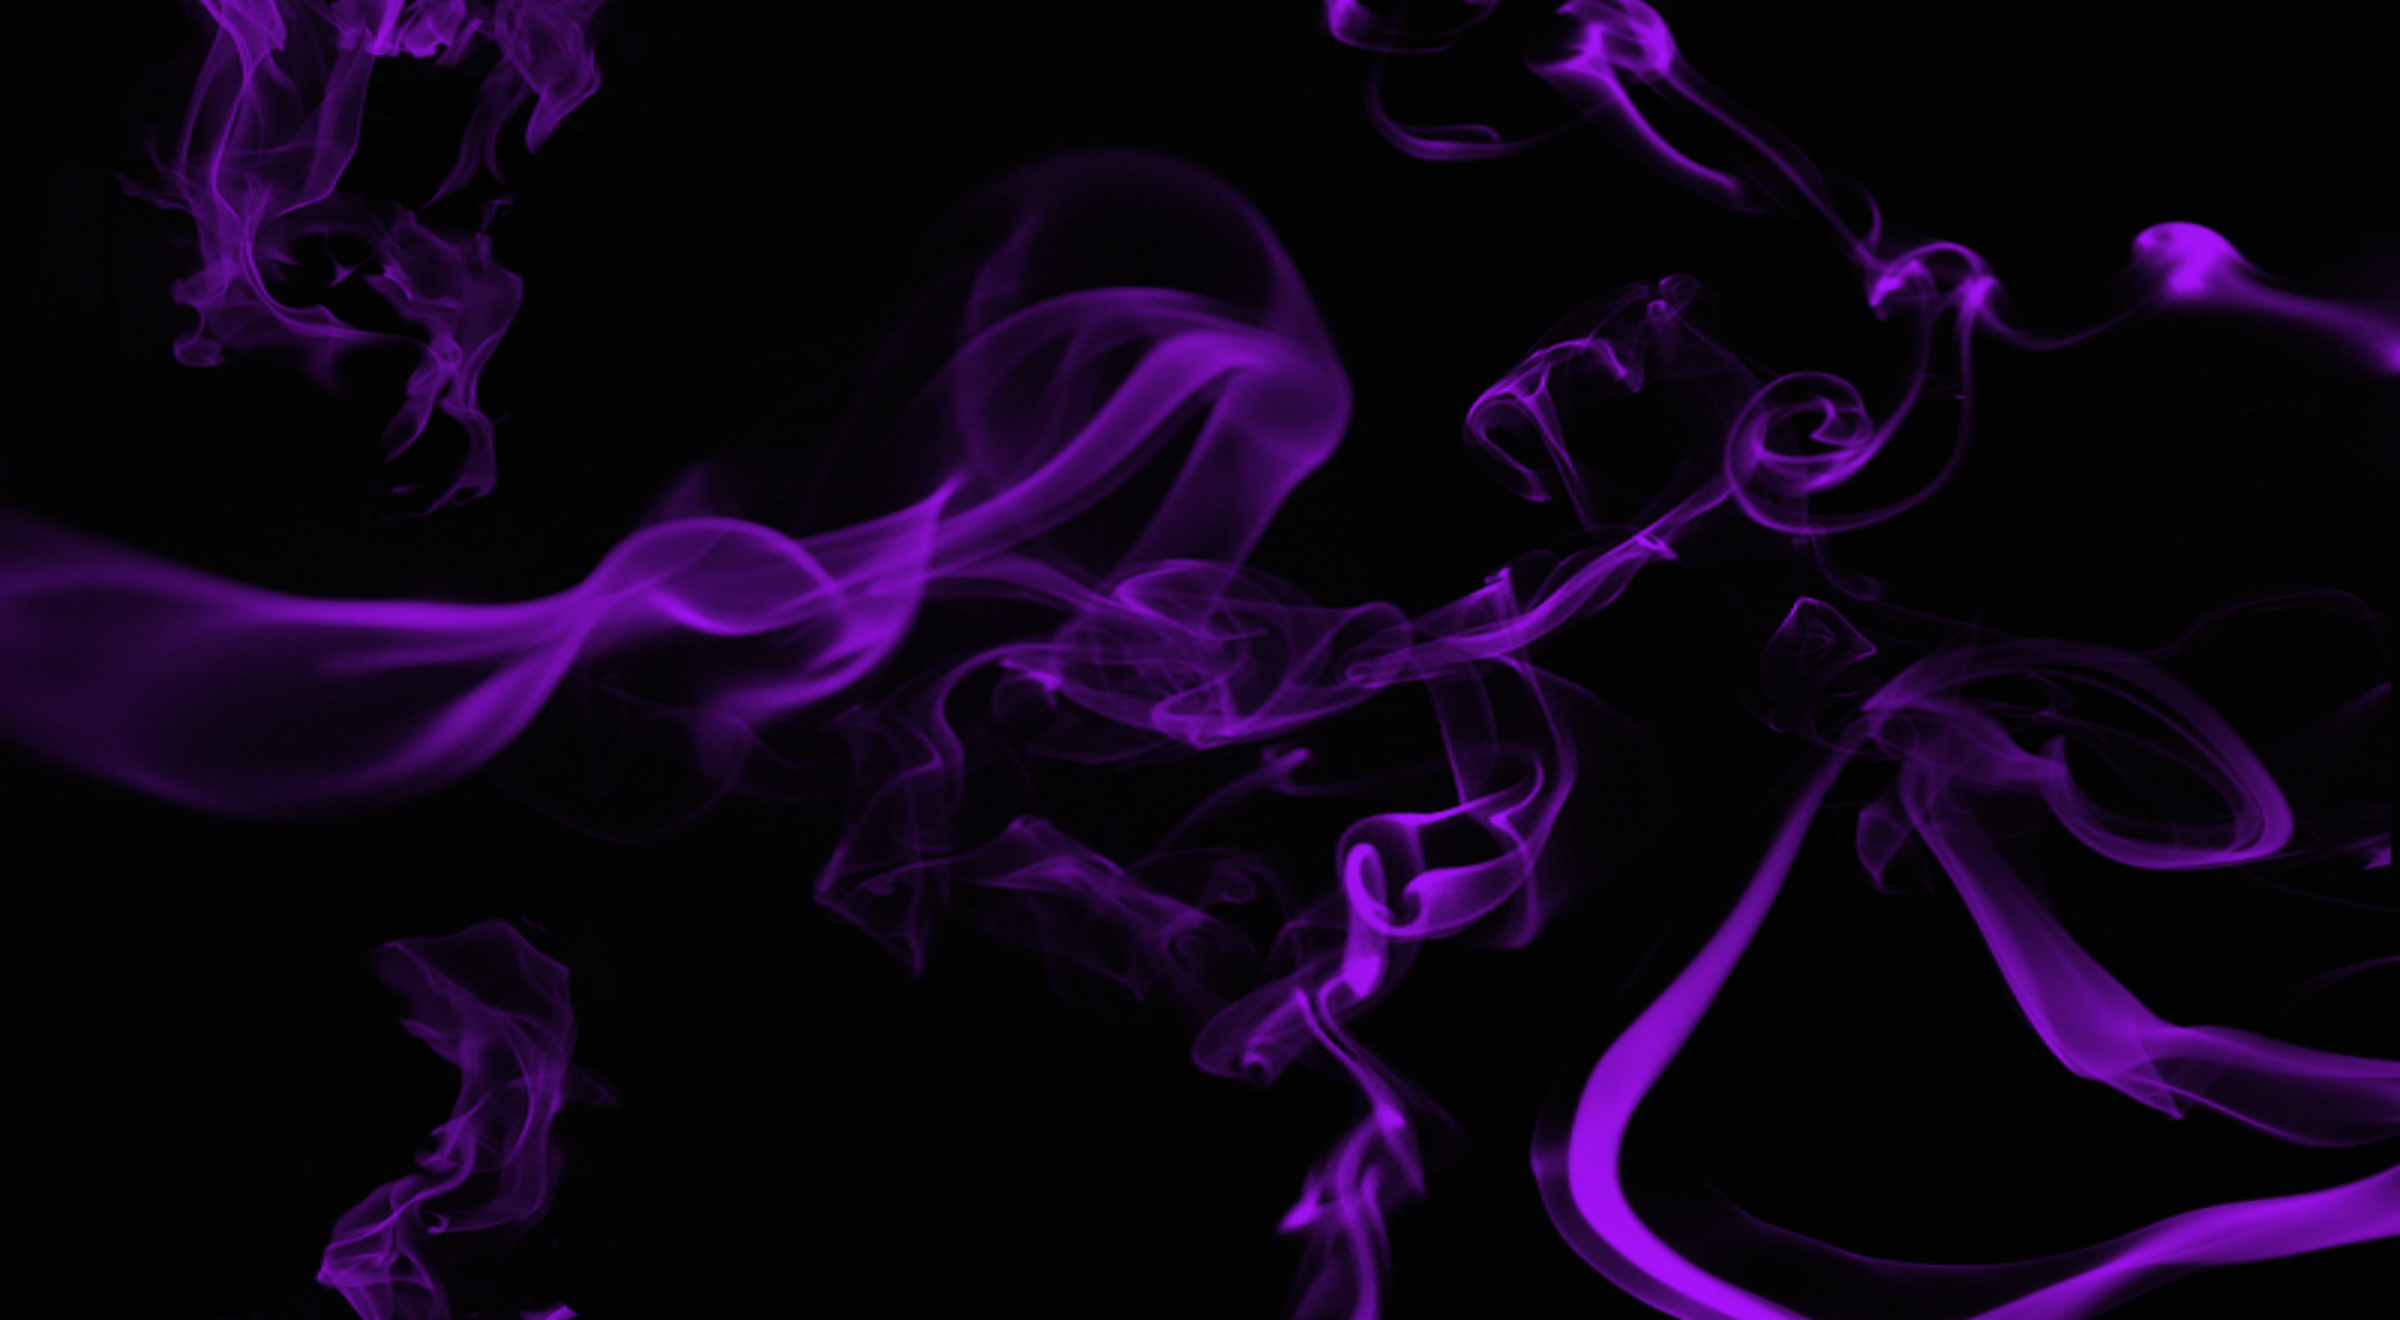 Smoke Wallpaper HD Wallpapers Plus 2400x1320